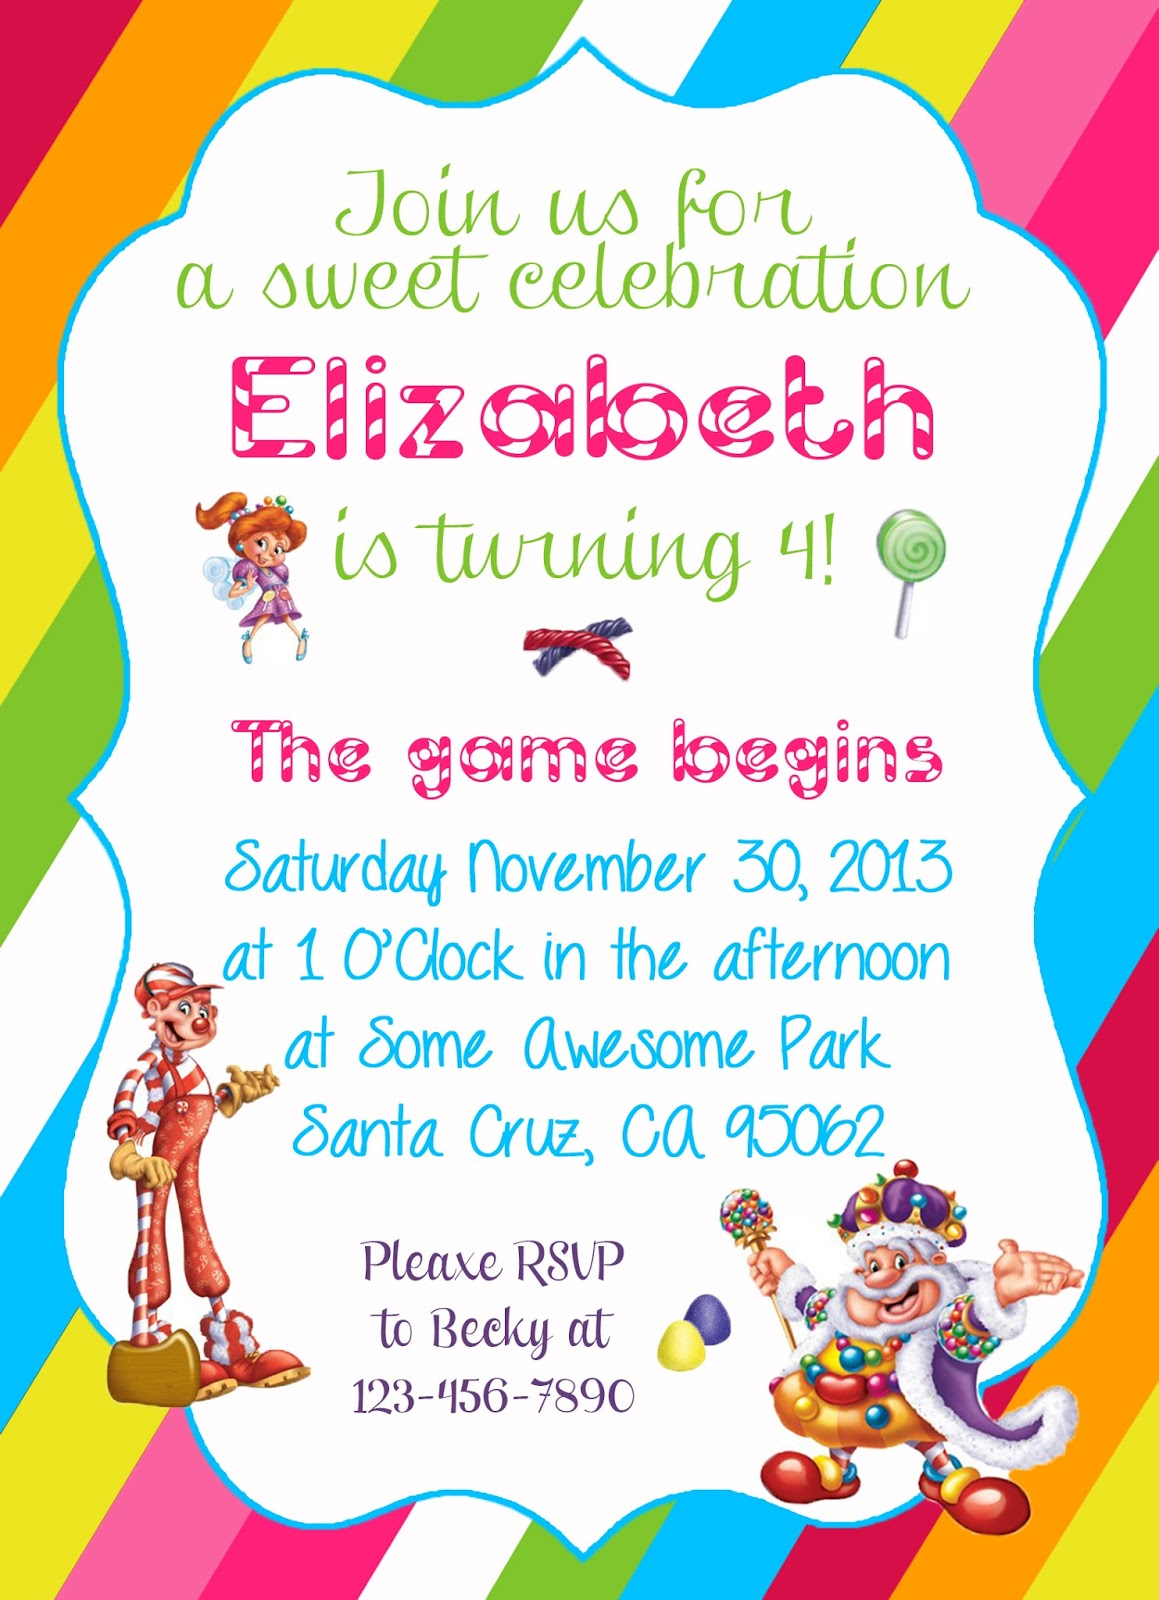 Candyland theme party invitations mickey mouse invitations templates candyland invitation candyland invitation diy design den free candyland themed party printable invitation stopboris Choice Image